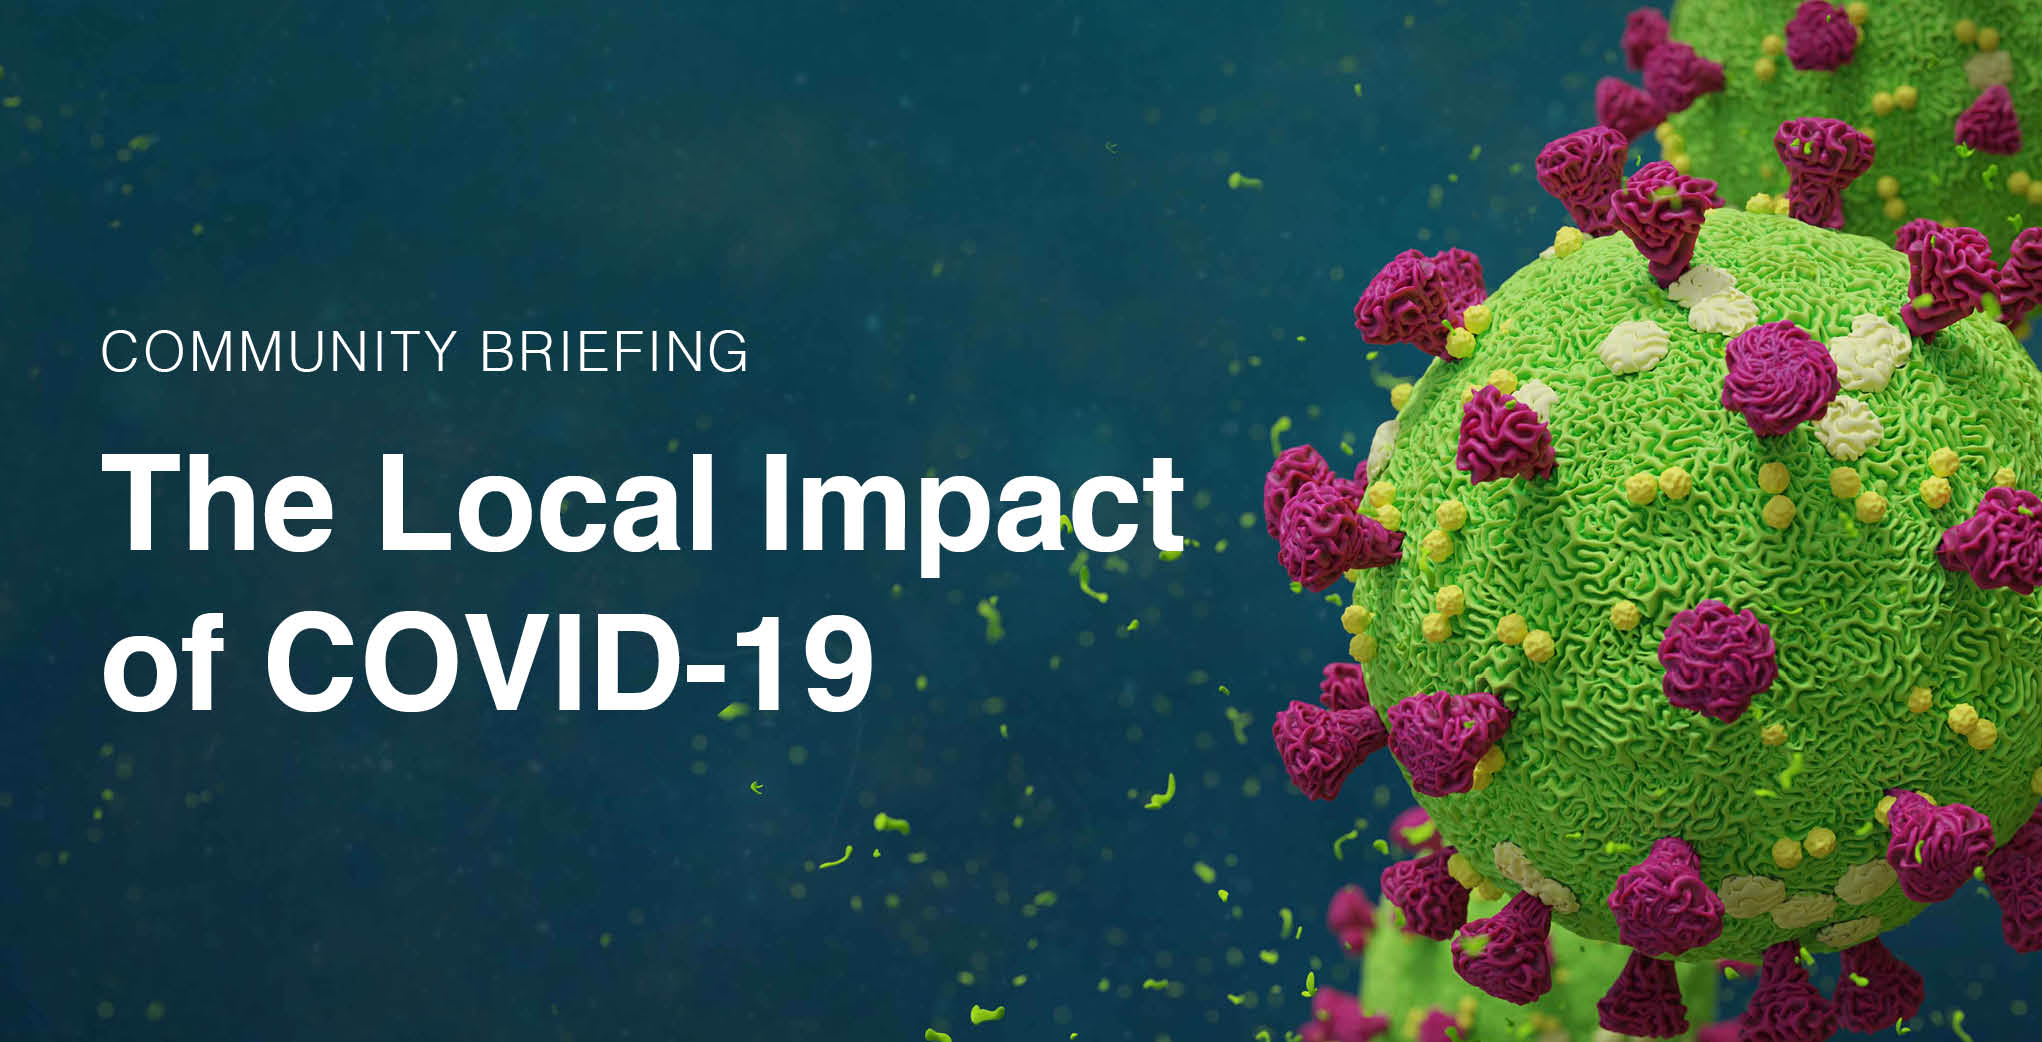 Community Briefing: The Local Impact of COVID-19